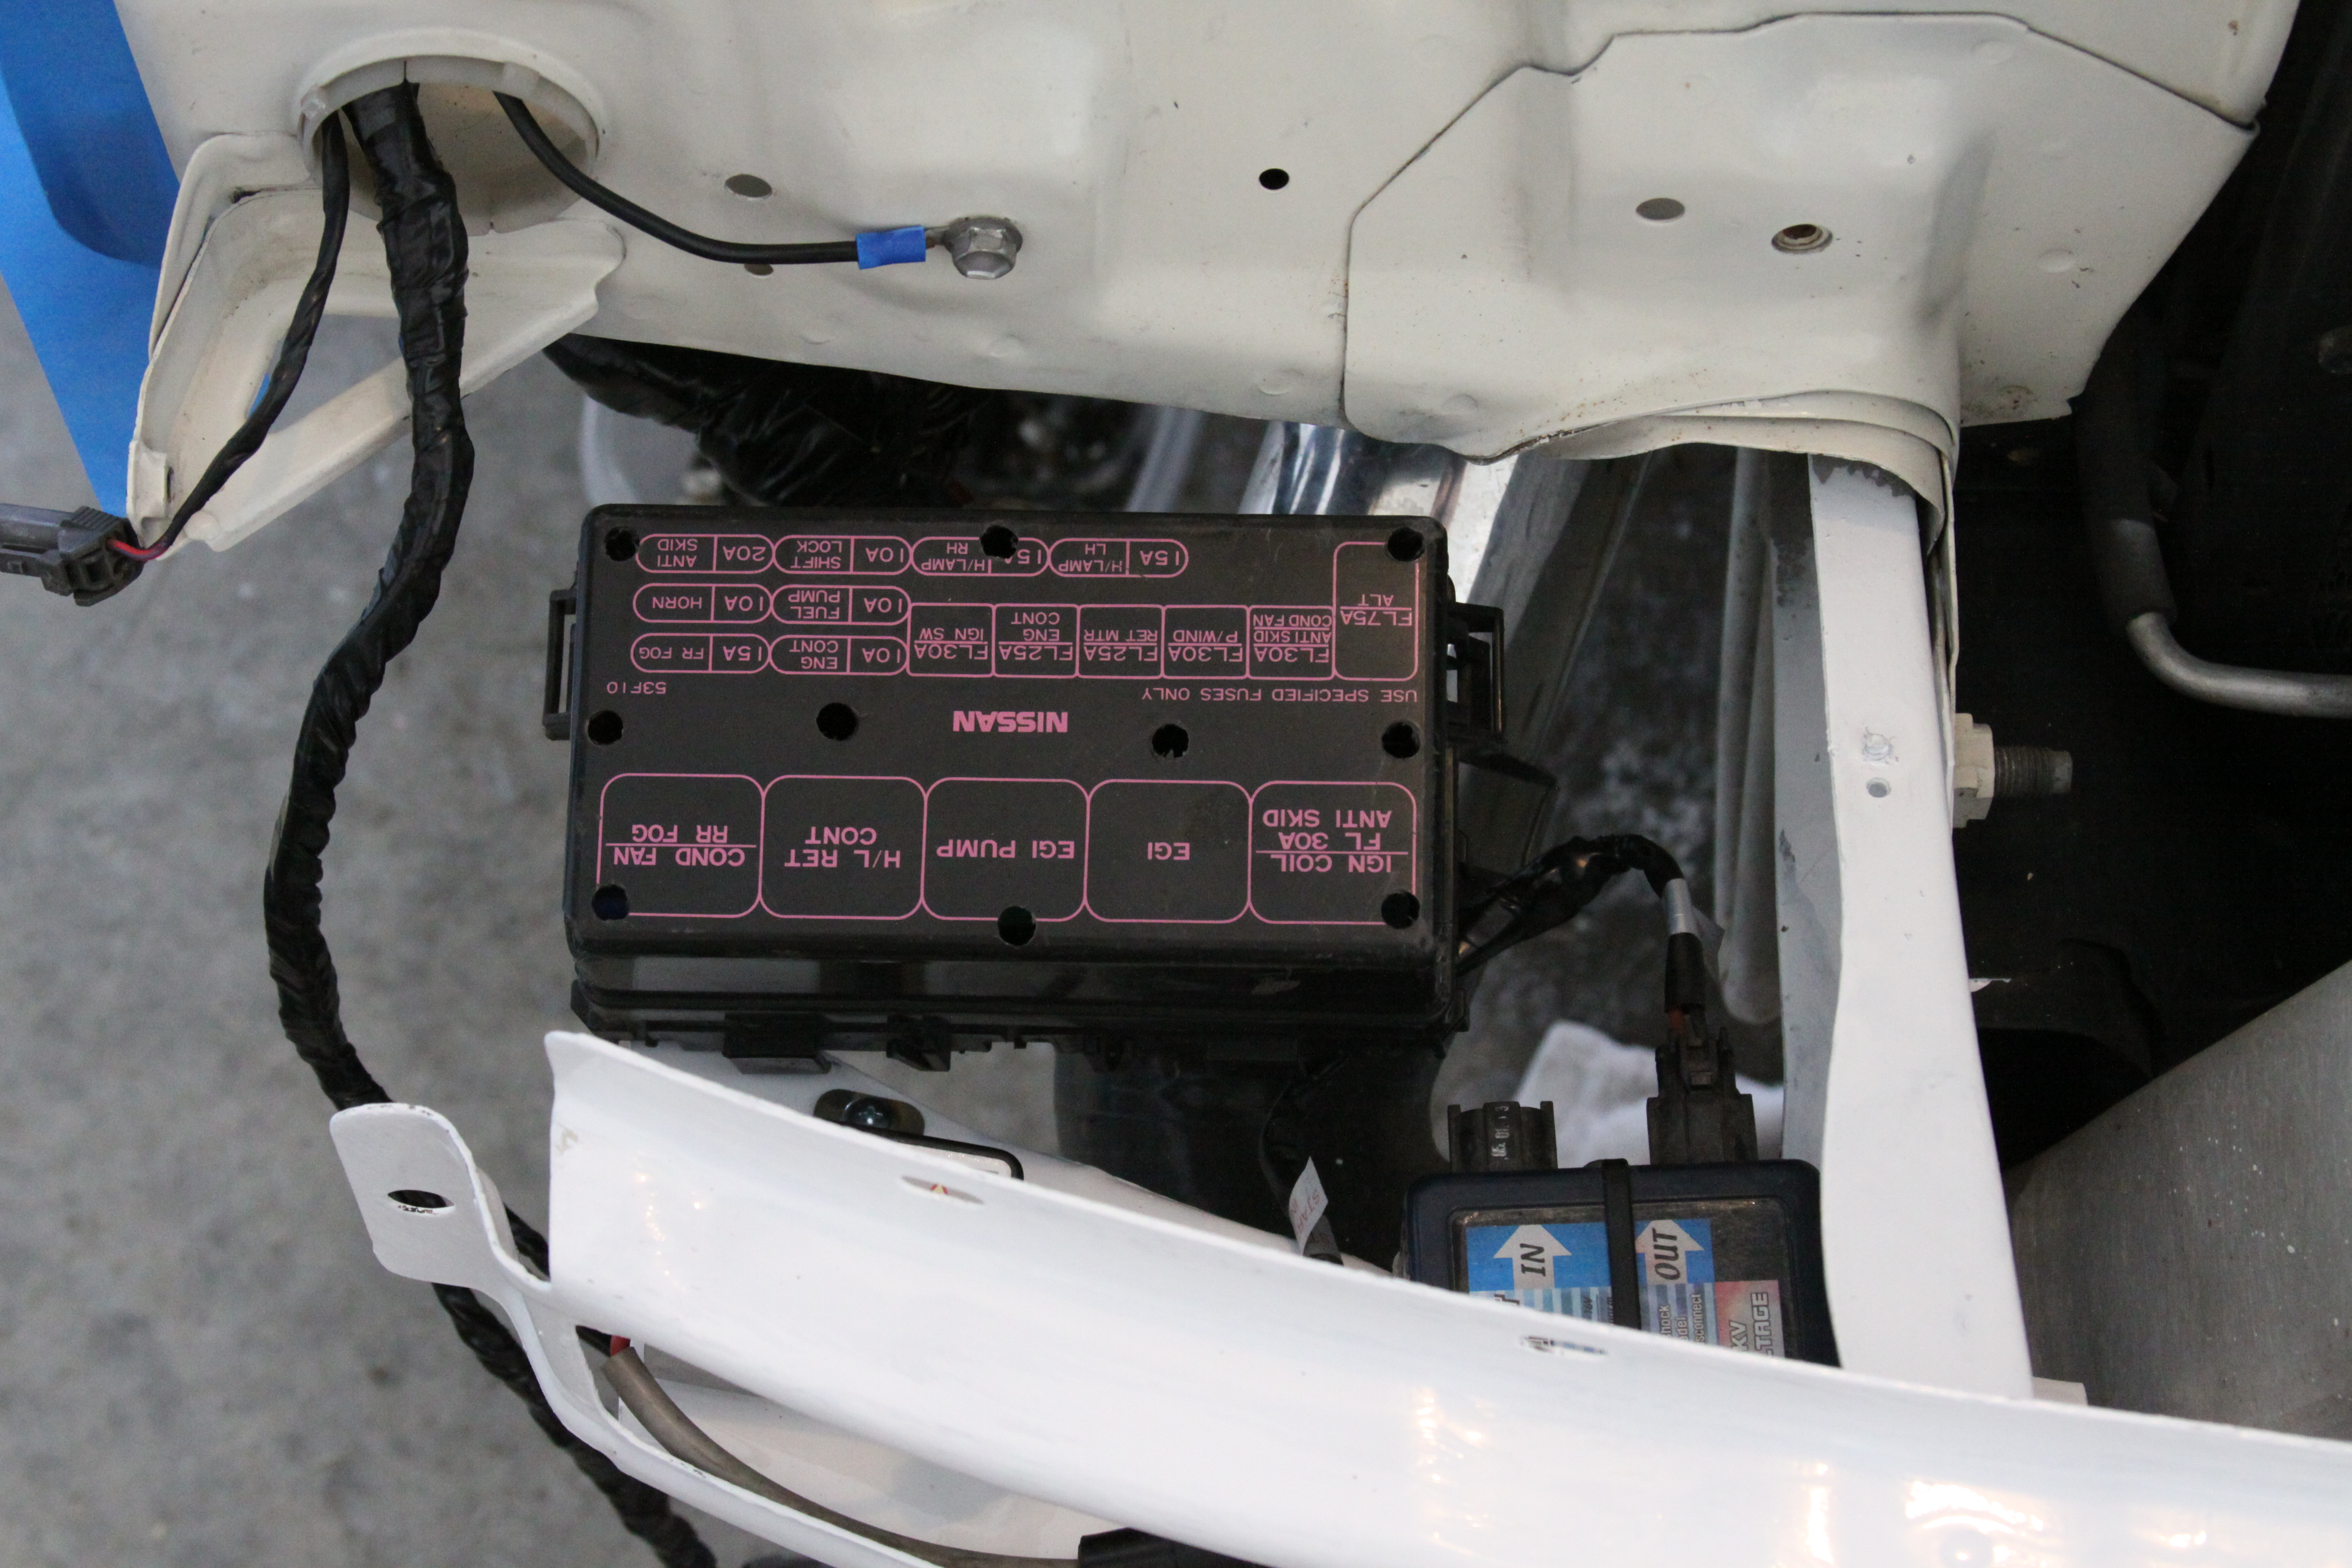 Interior Fuse Box S13 Not Lossing Wiring Diagram 2012 Ford Fiesta Custom Diagrams Rh 45 Jennifer Retzke De 2014 Nissan